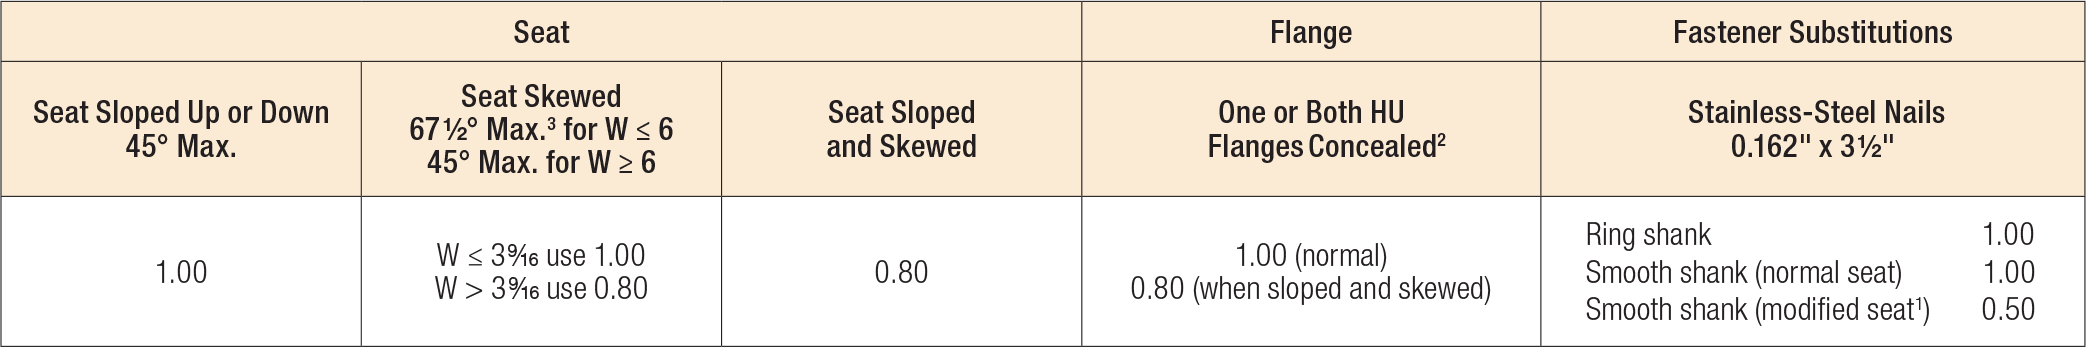 U Series Modifications and Associated Load Reductions